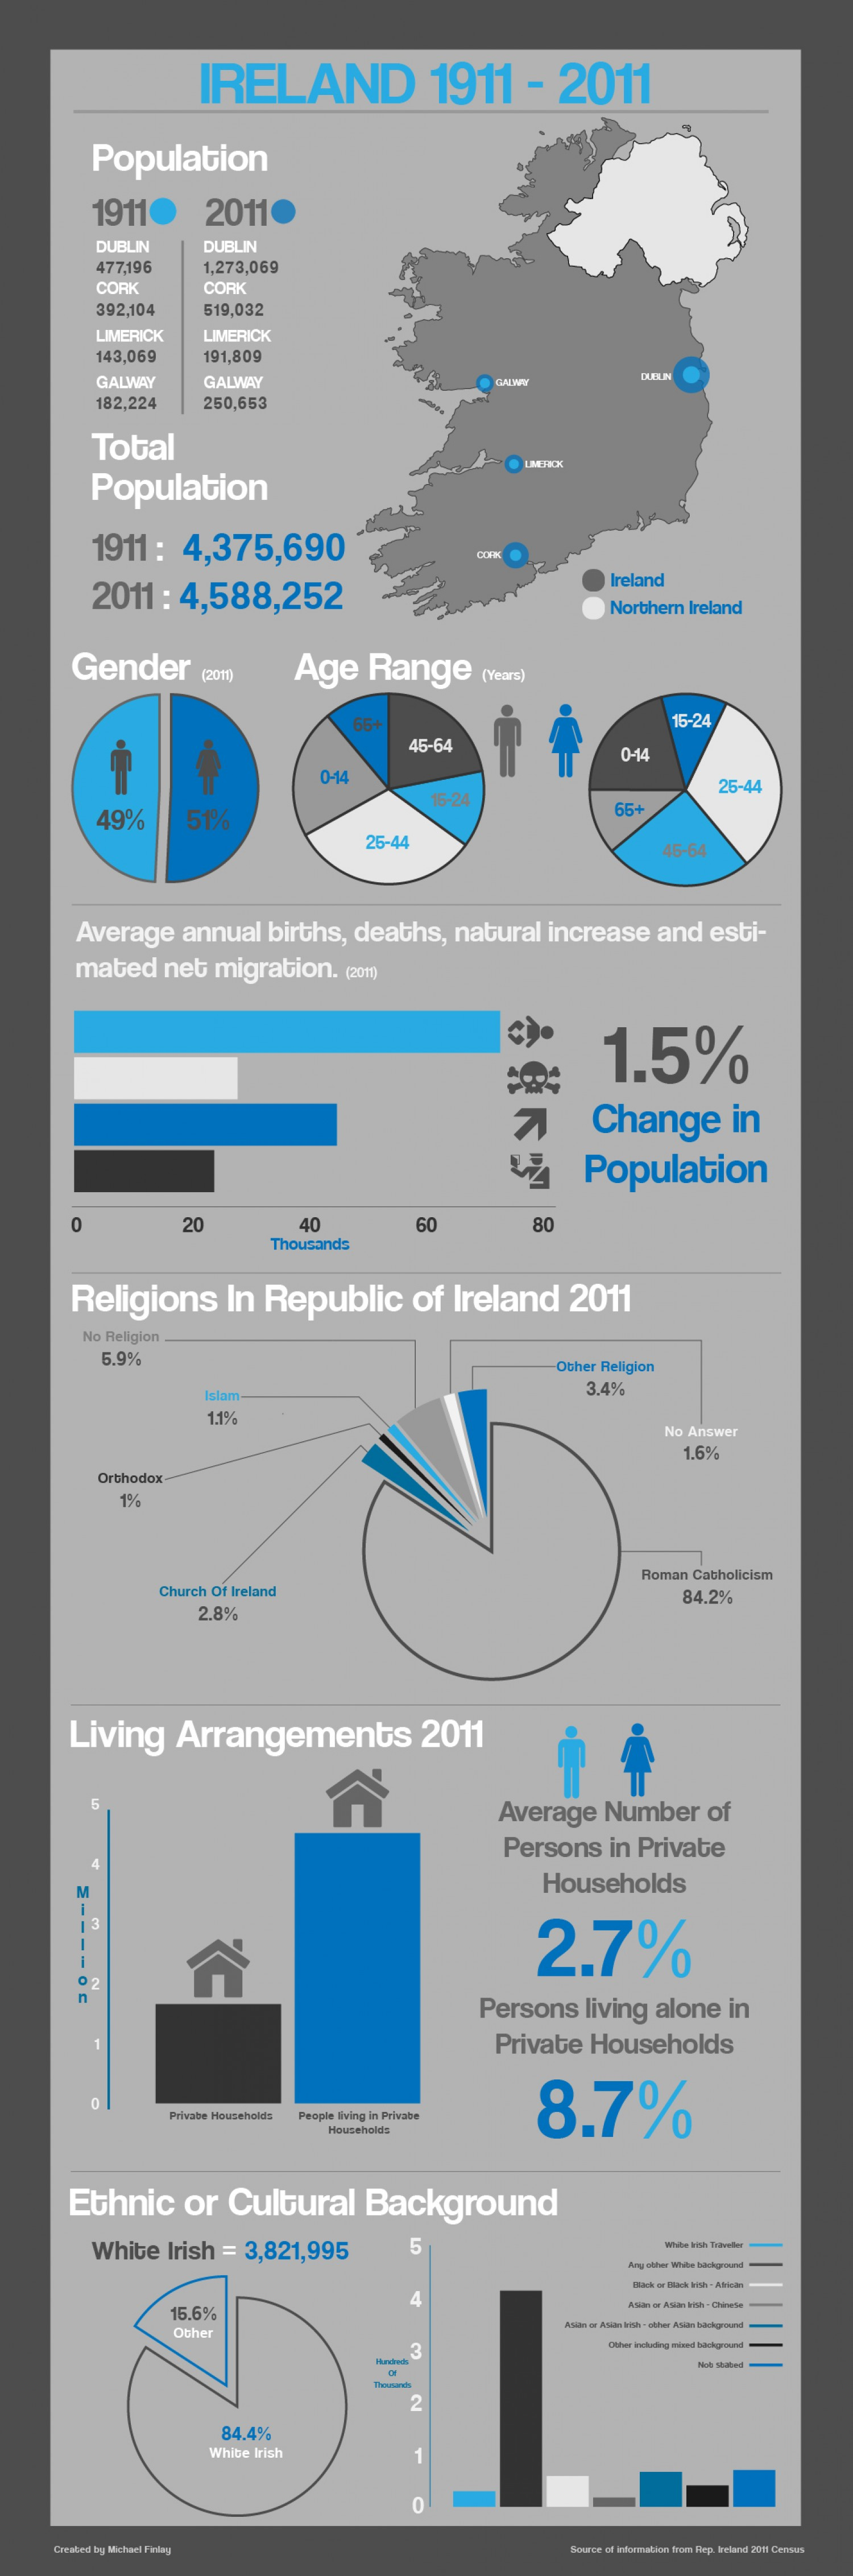 Ireland by numbers